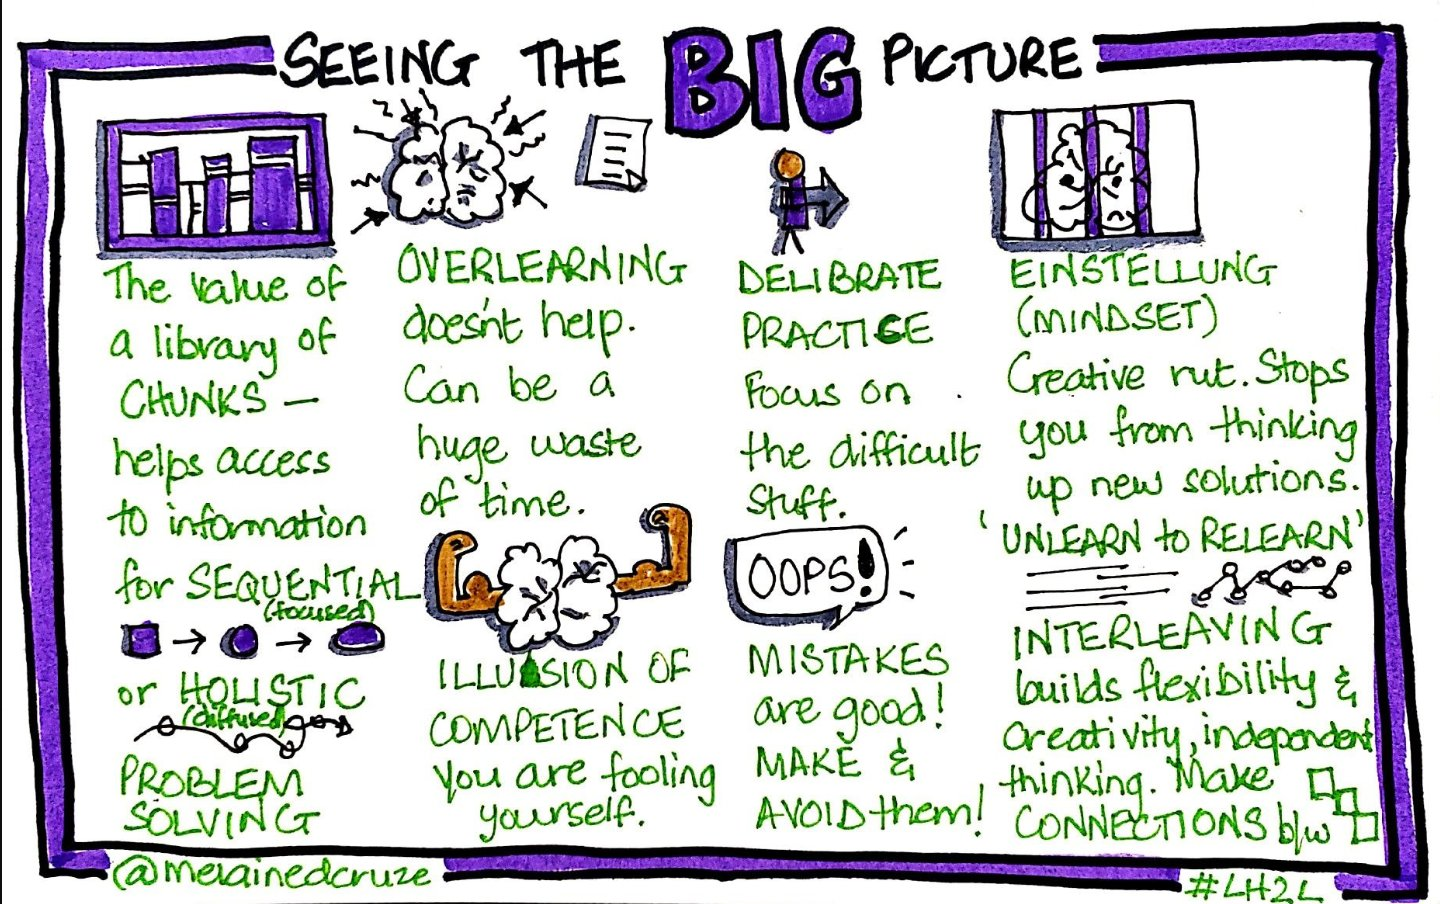 #sketchnotes #visualnotes #bigpicture from  @LHTL_MOOC #LH2L on @coursera https://t.co/eu4GkfWhdE